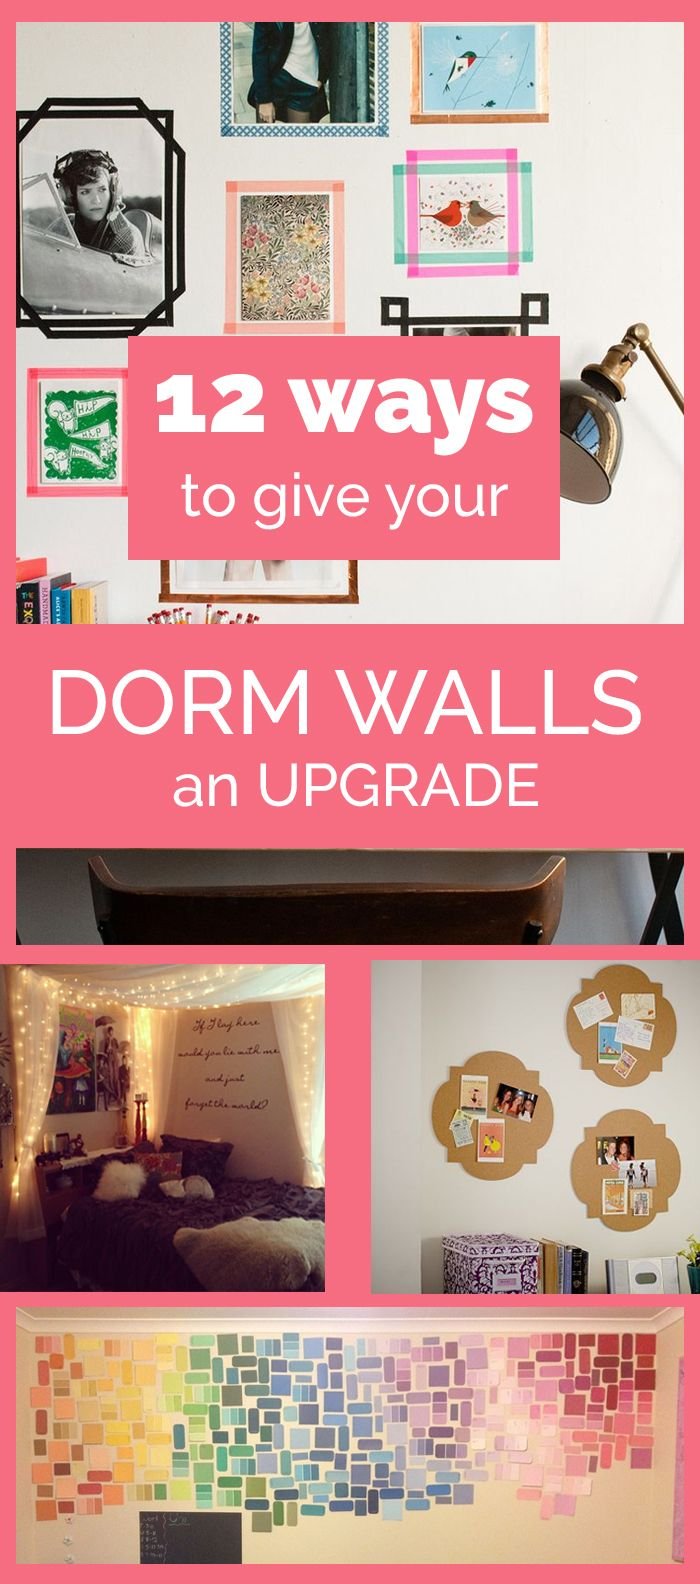 11 Ways To Make The Most Of Your Dorm Room: 12 Ways To Give Your Dorm Walls An Upgrade